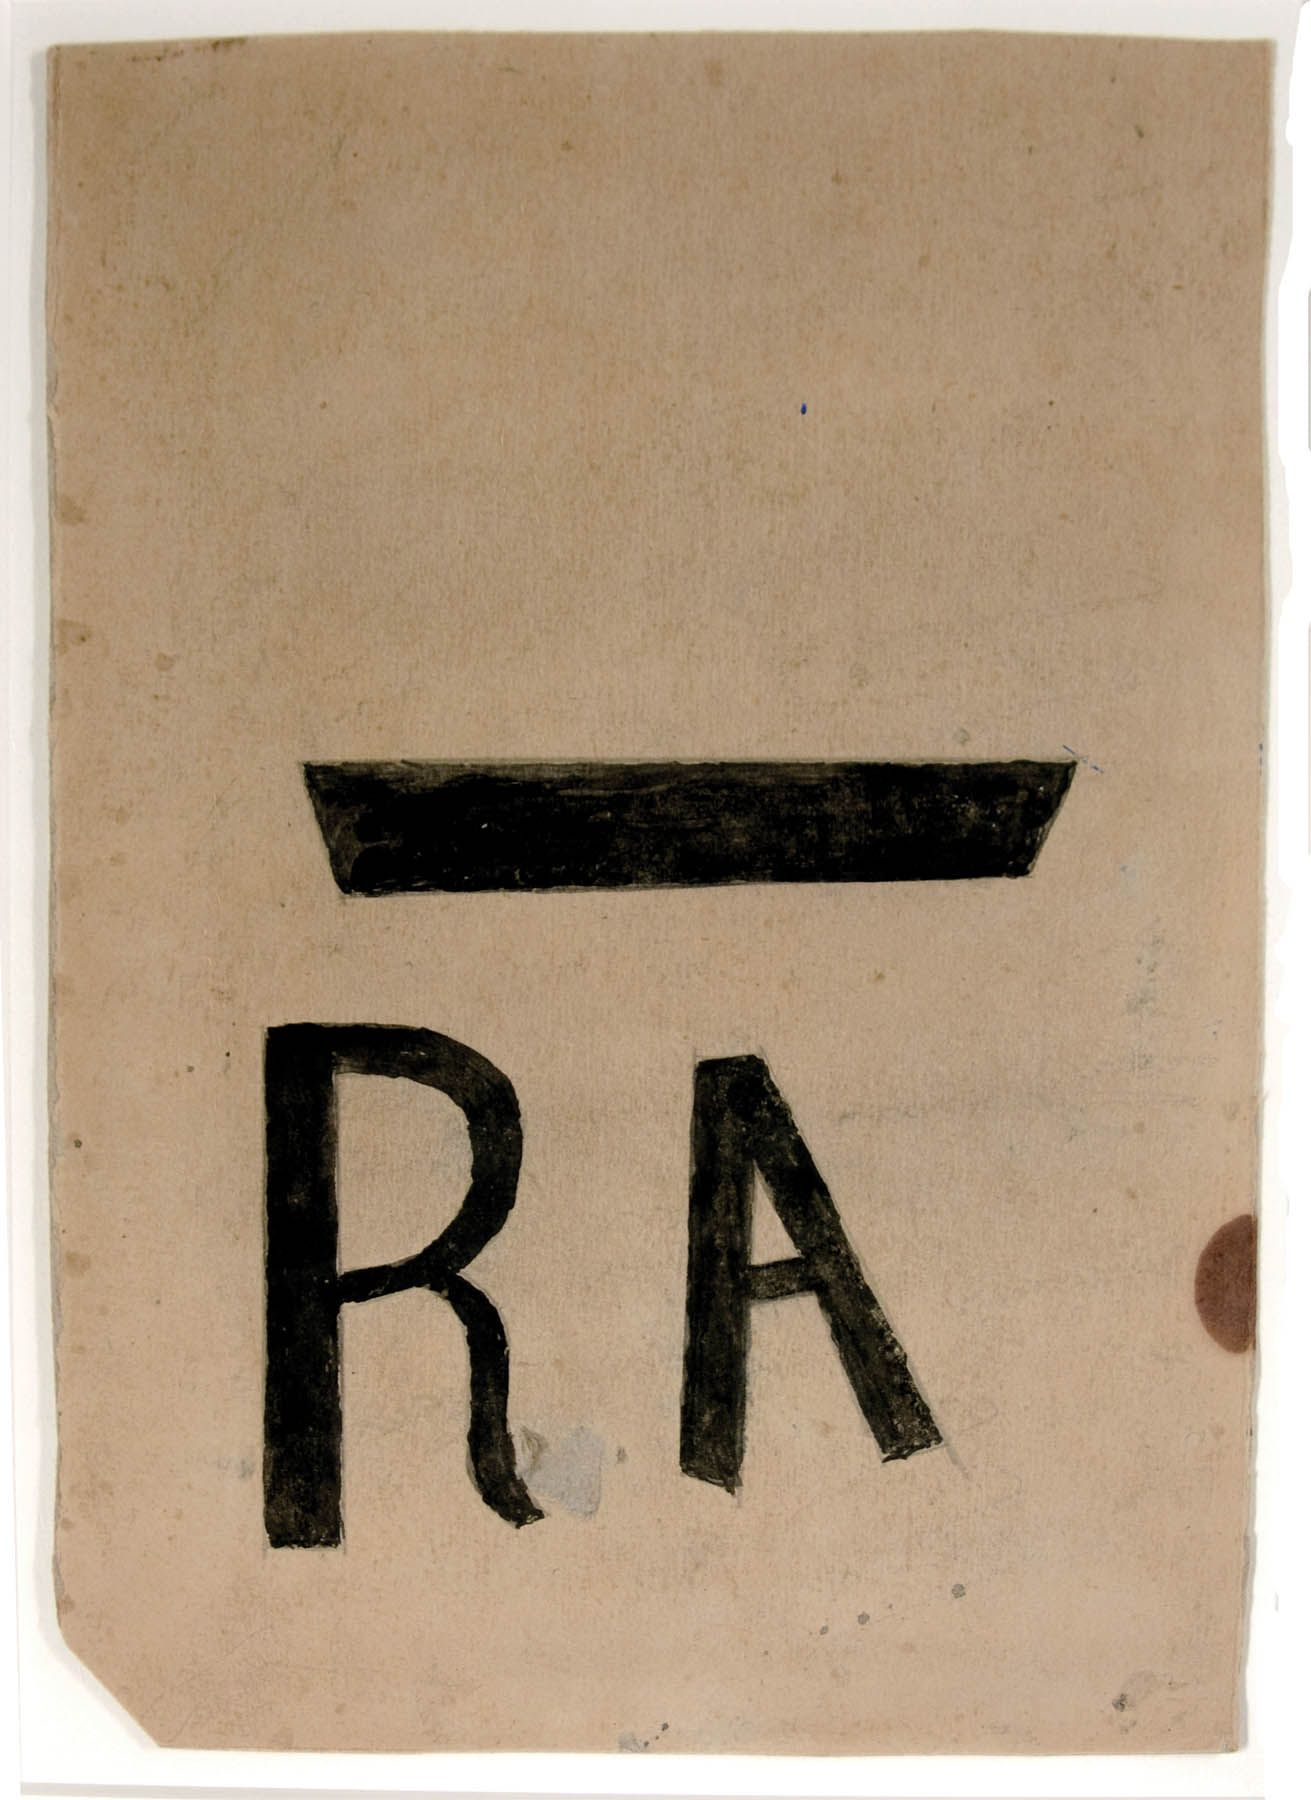 RA Poster (Resettlement Administration), c. 1939-1942, Pencil and Poster Paint on Cardboard